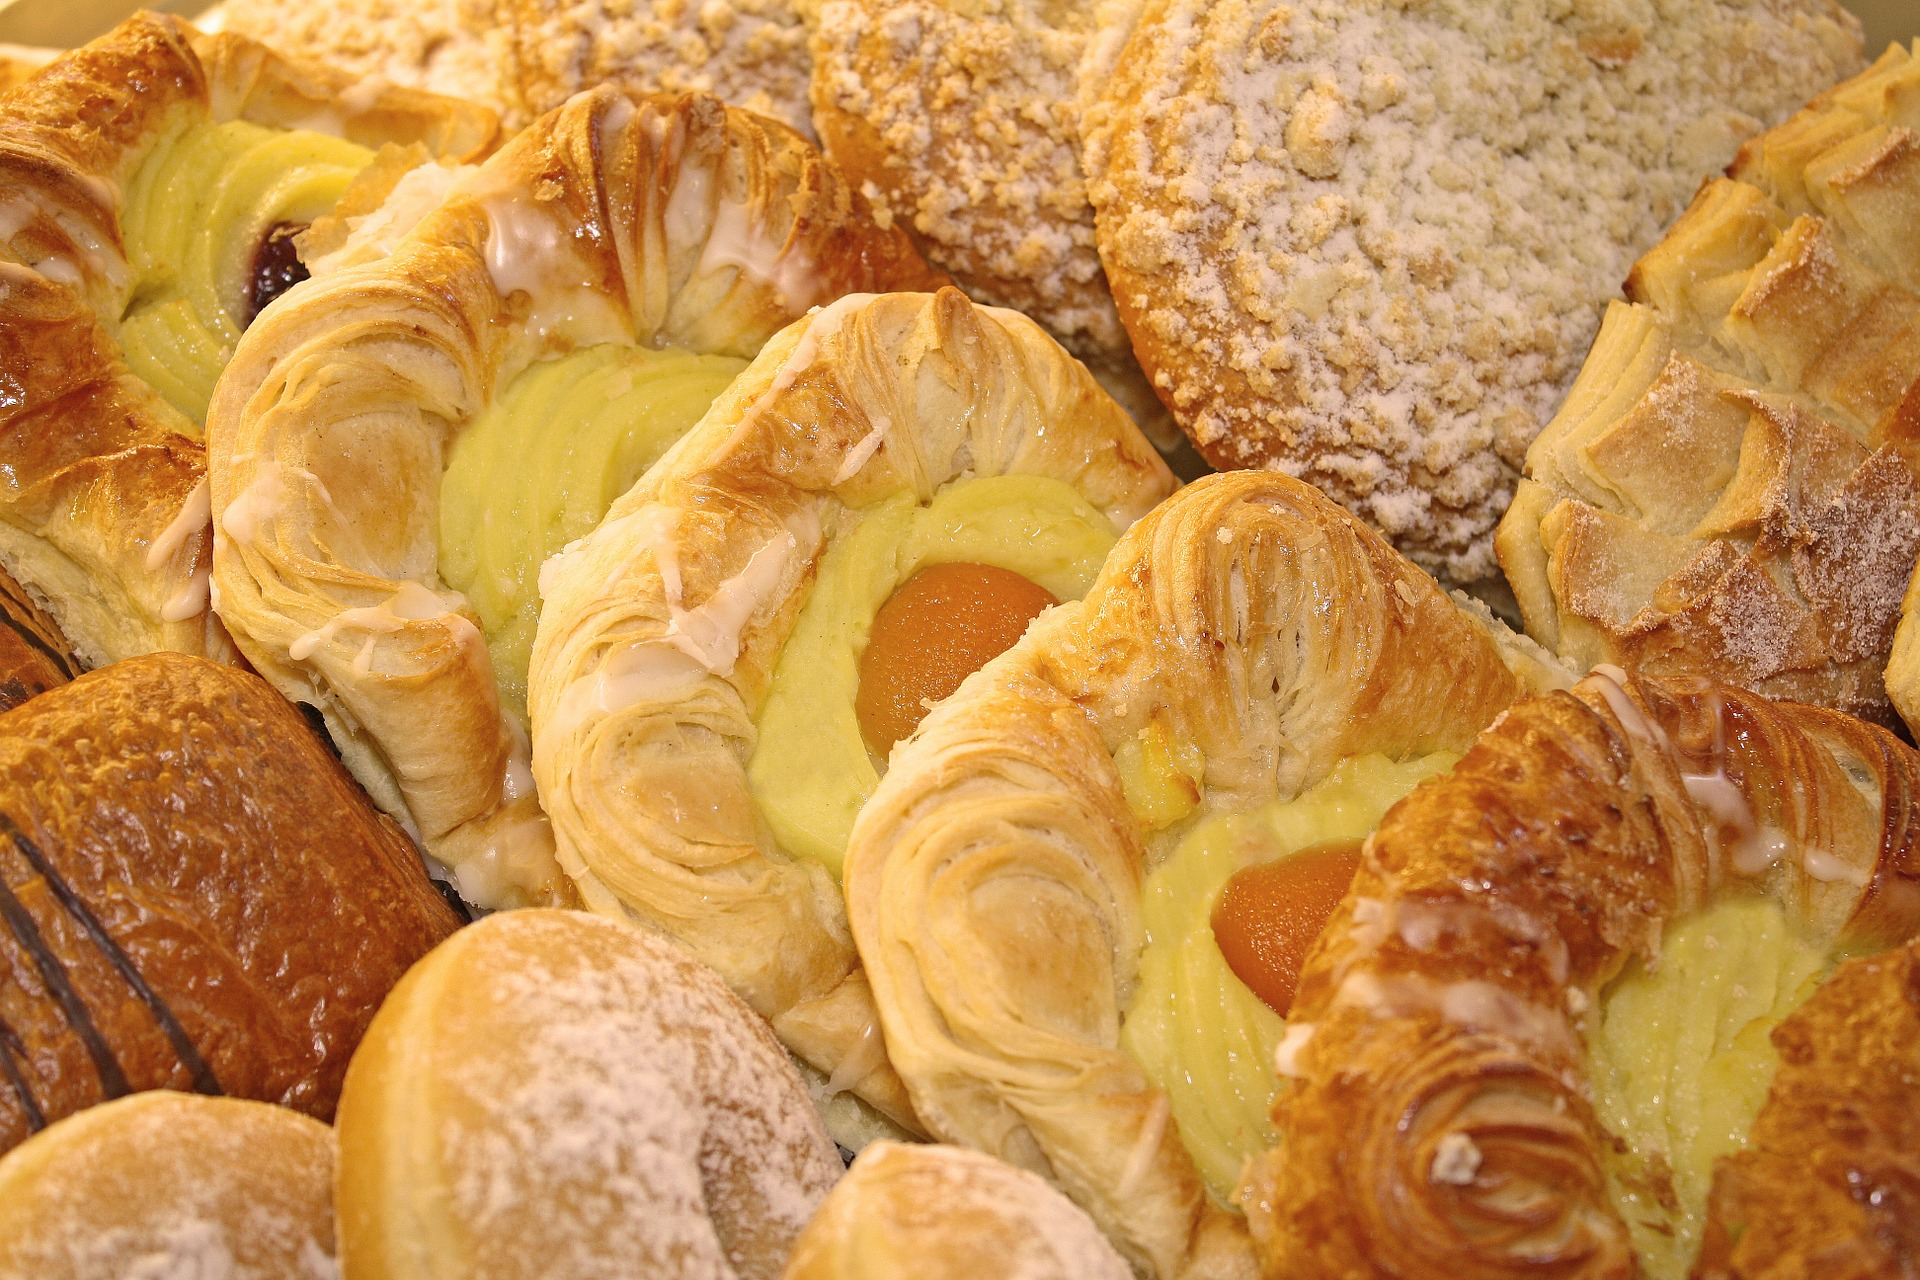 assortment of pastries